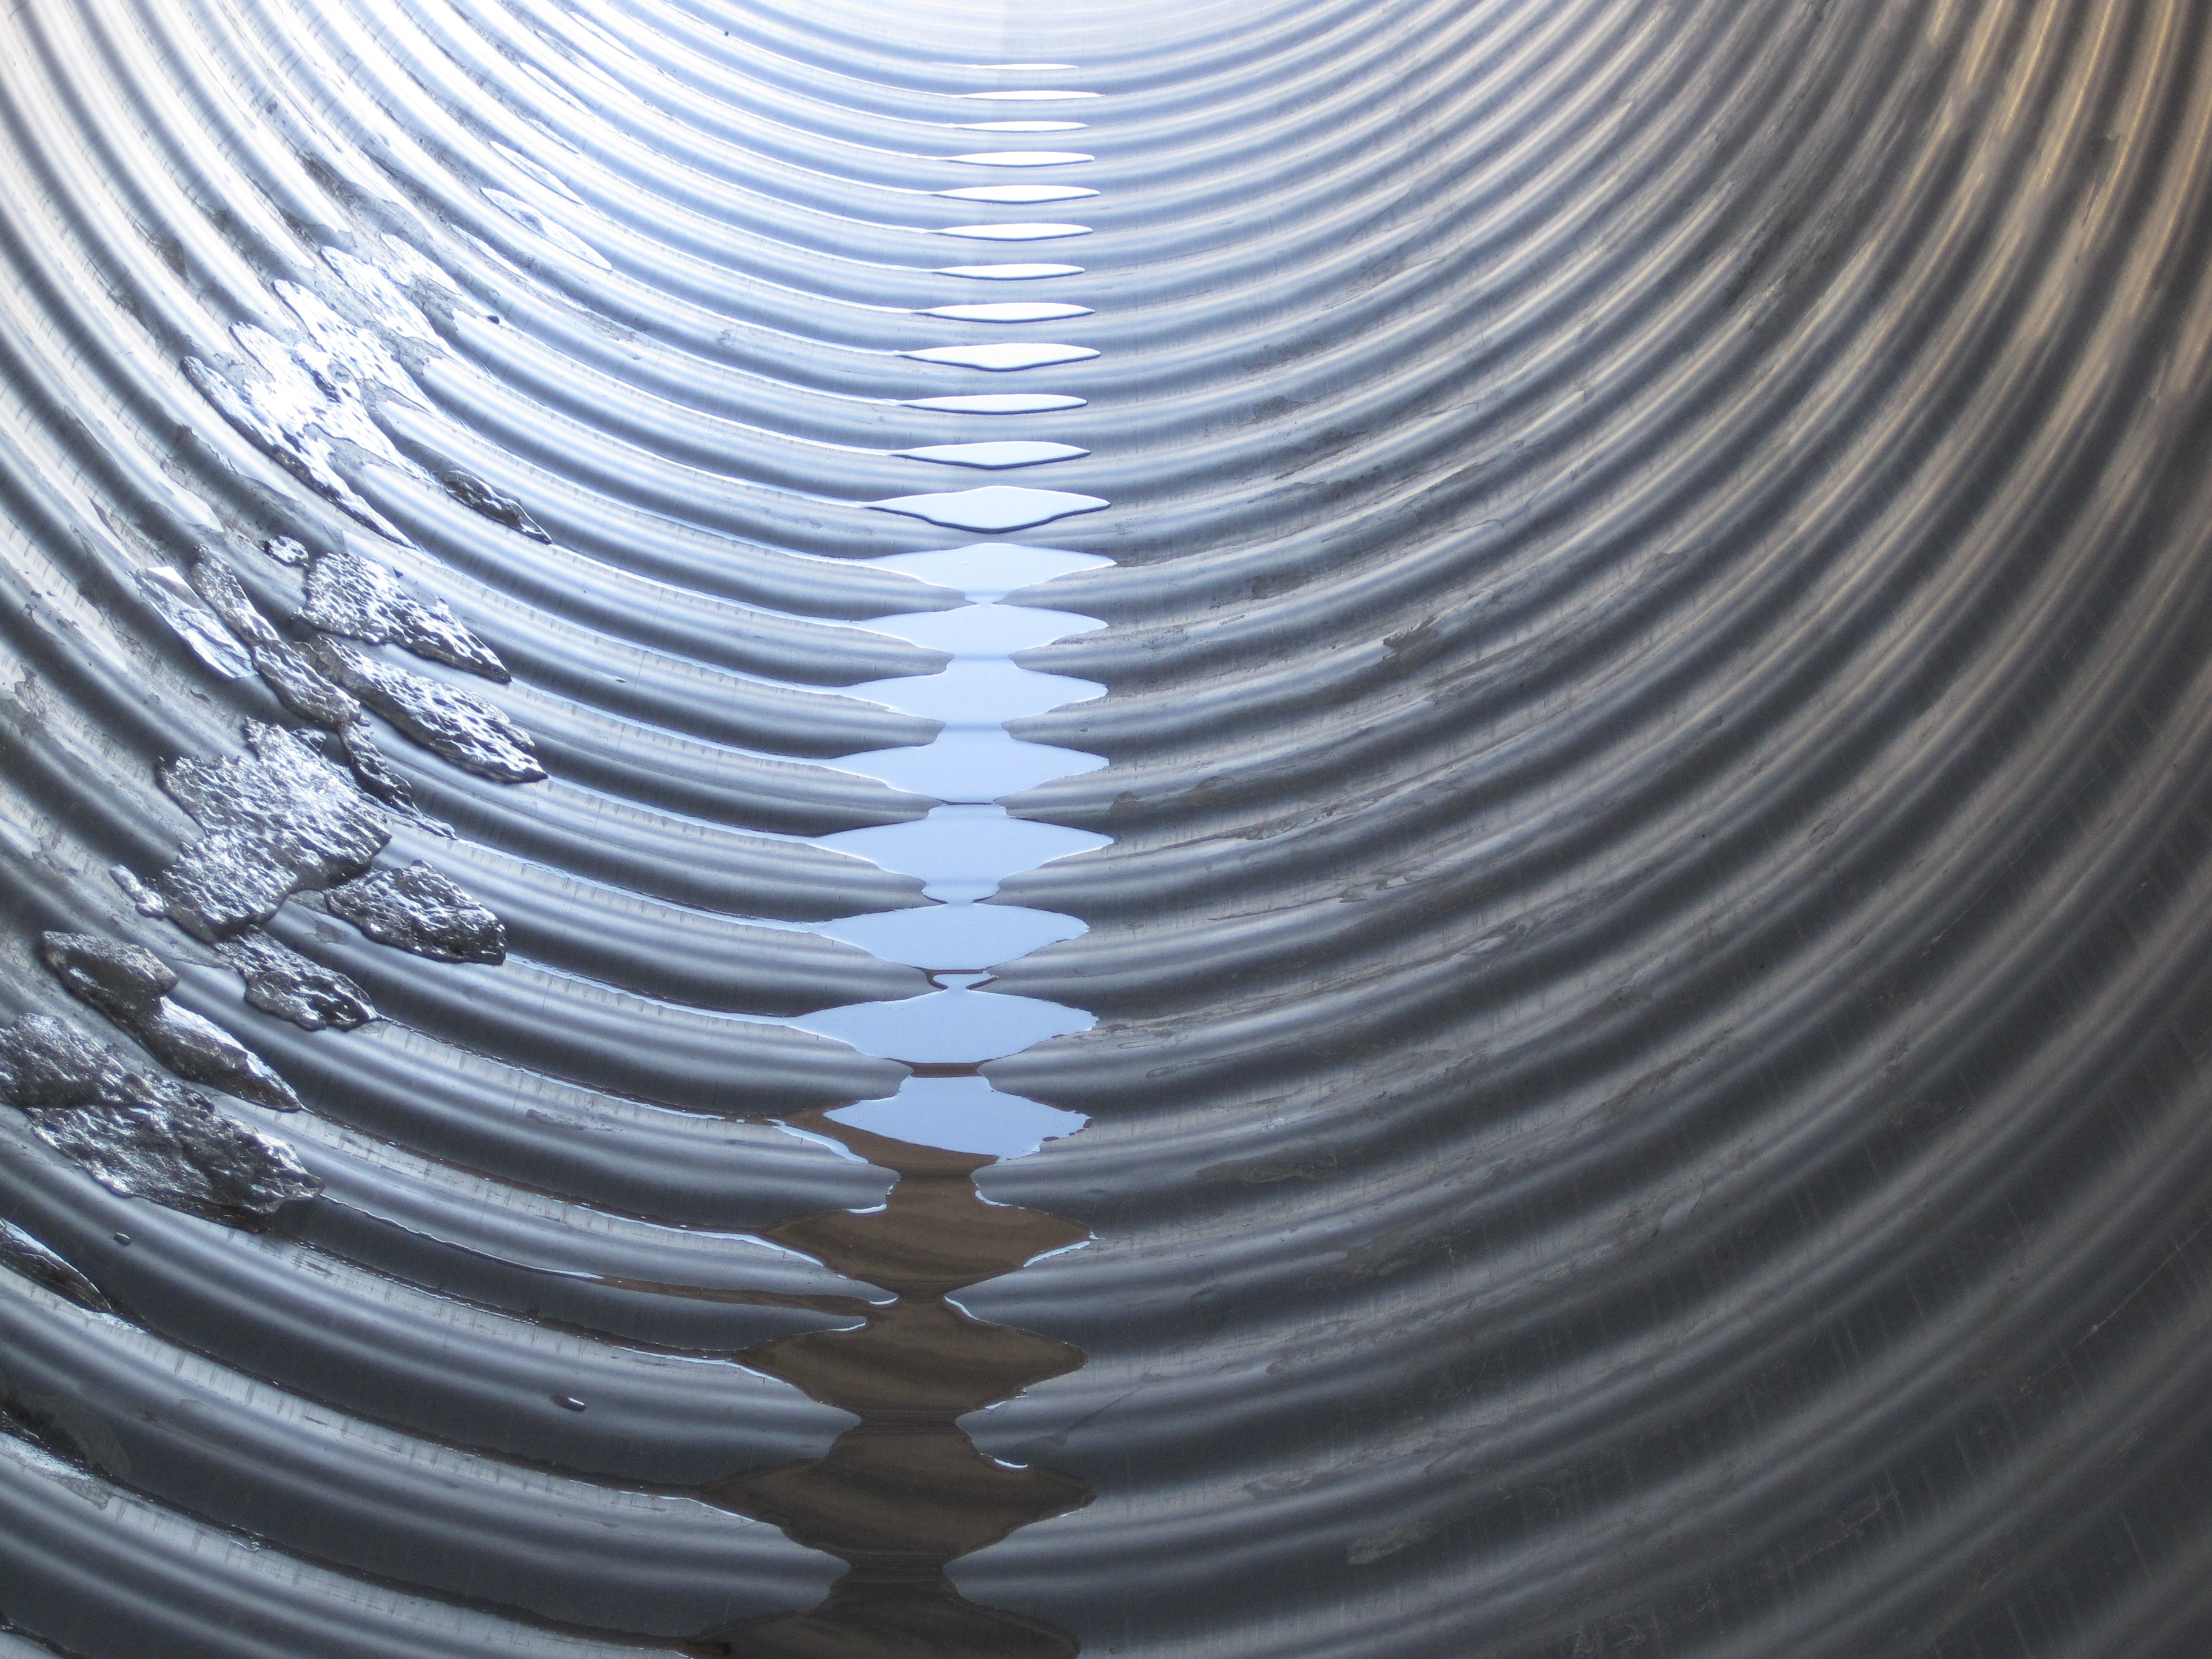 Unrealistic roughness coefficient could impair pipe capacity